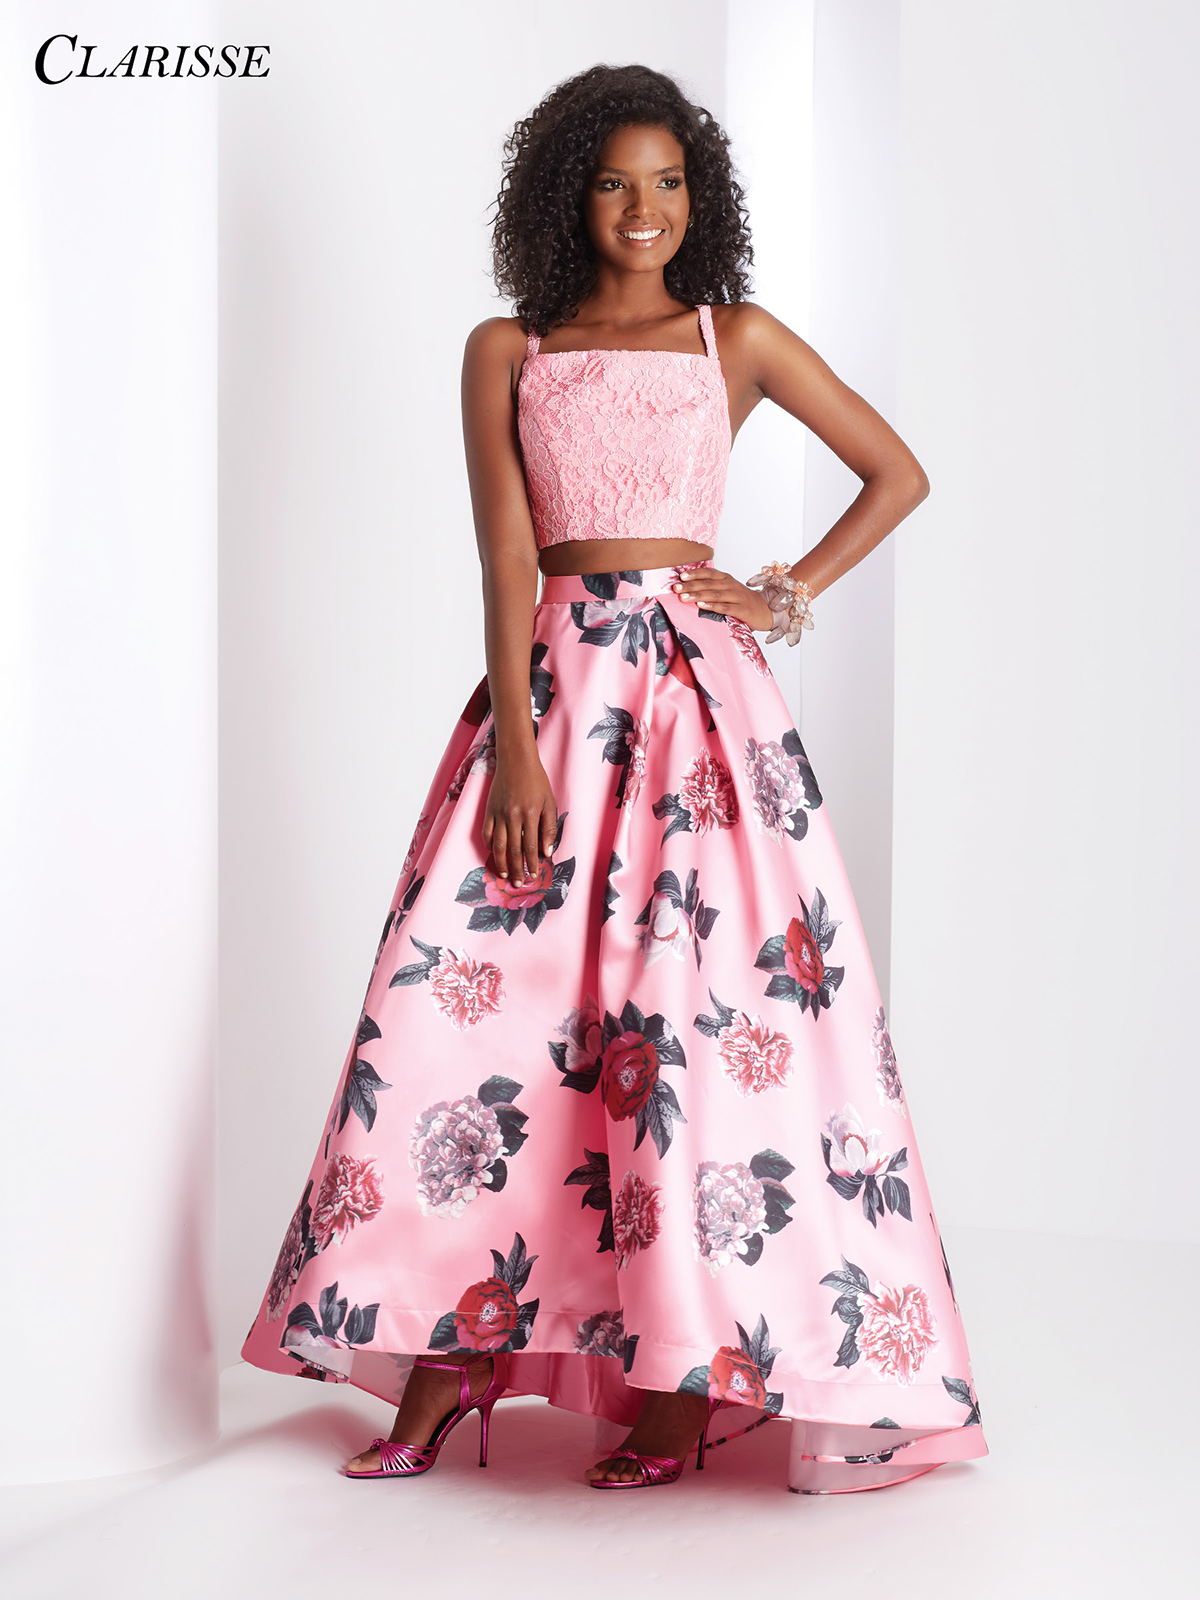 2018 Prom Dress Clarisse 3420 | Promgirl.net